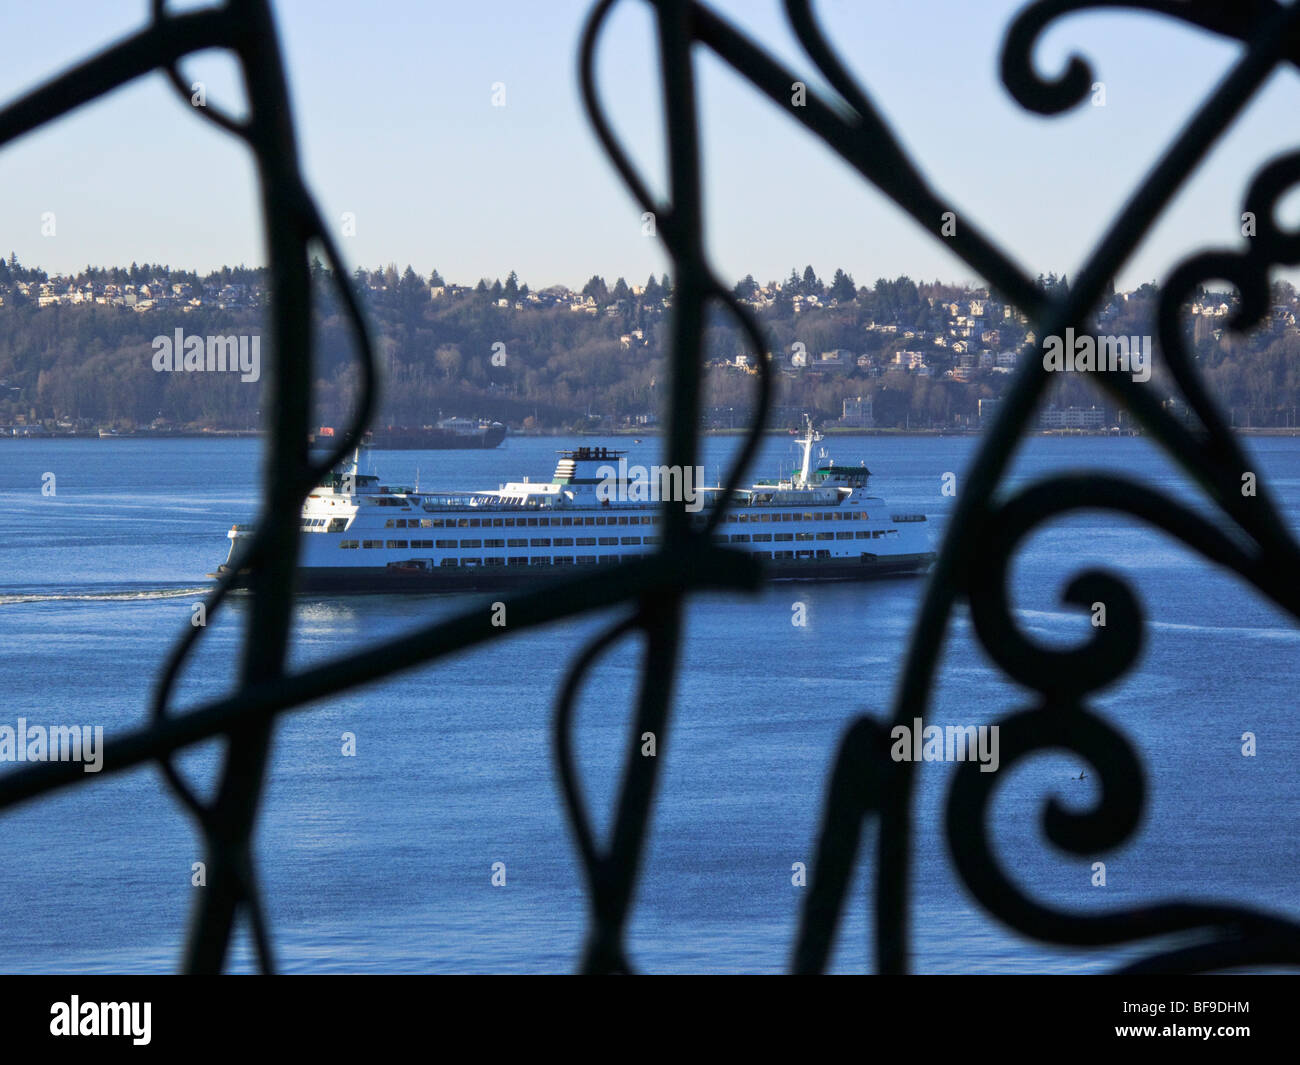 Elliott Bay view through wrought iron fence from Victor Steinbrueck Park, Seattle, Washington - Stock Image